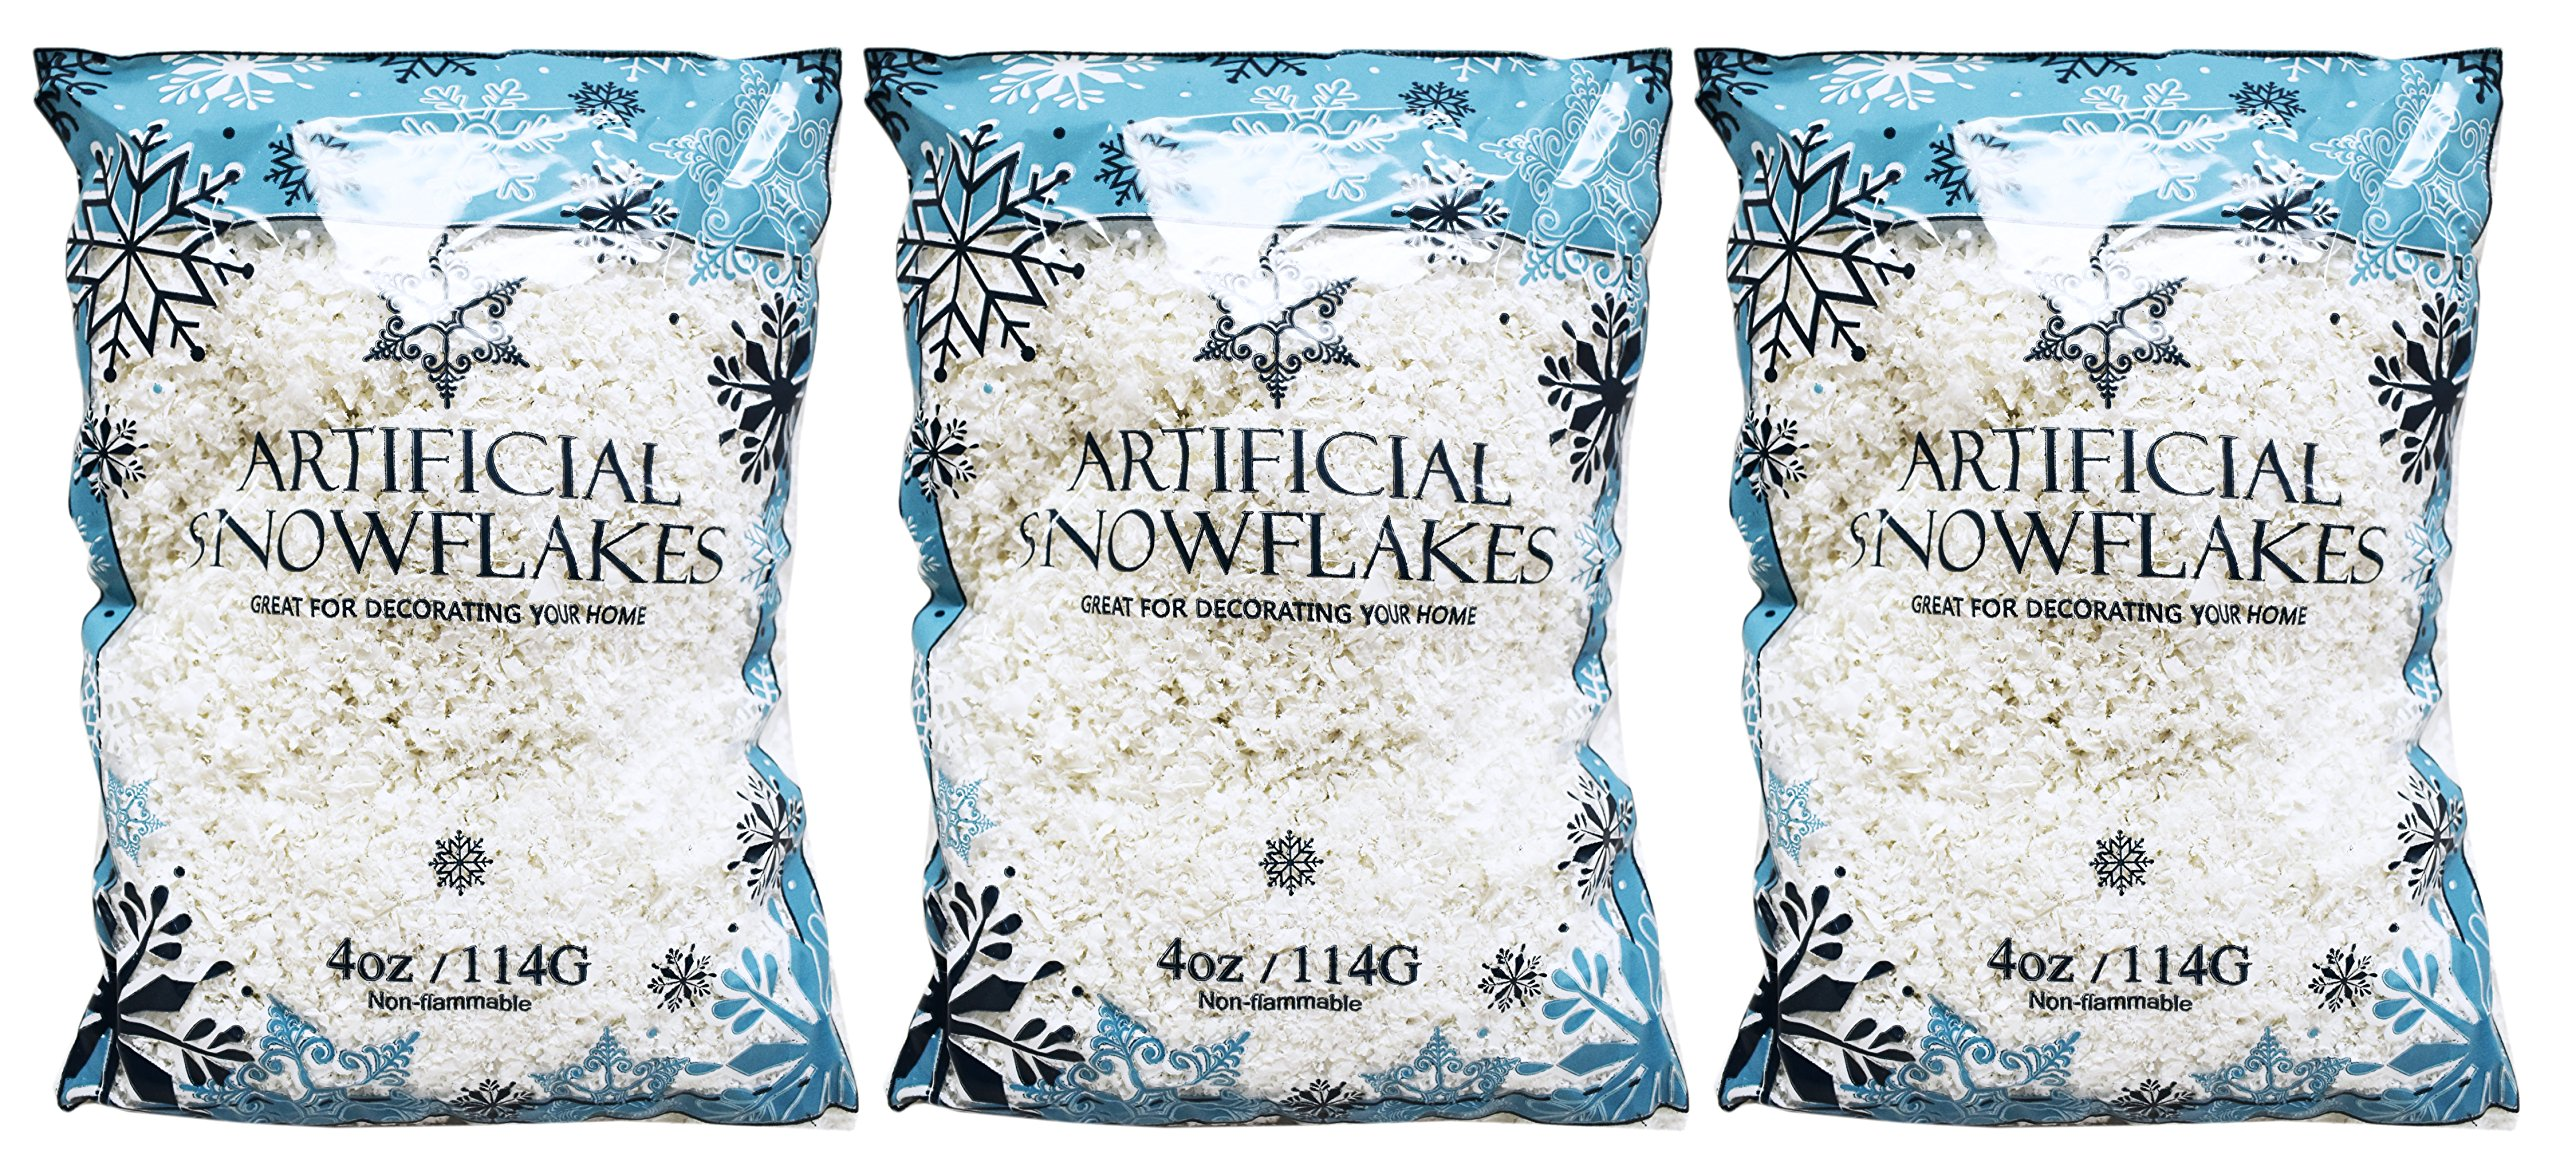 Set of 12 Ounces of Artificial Snow Flakes 4 Oz Bags Blue Printed Polybag by Regent